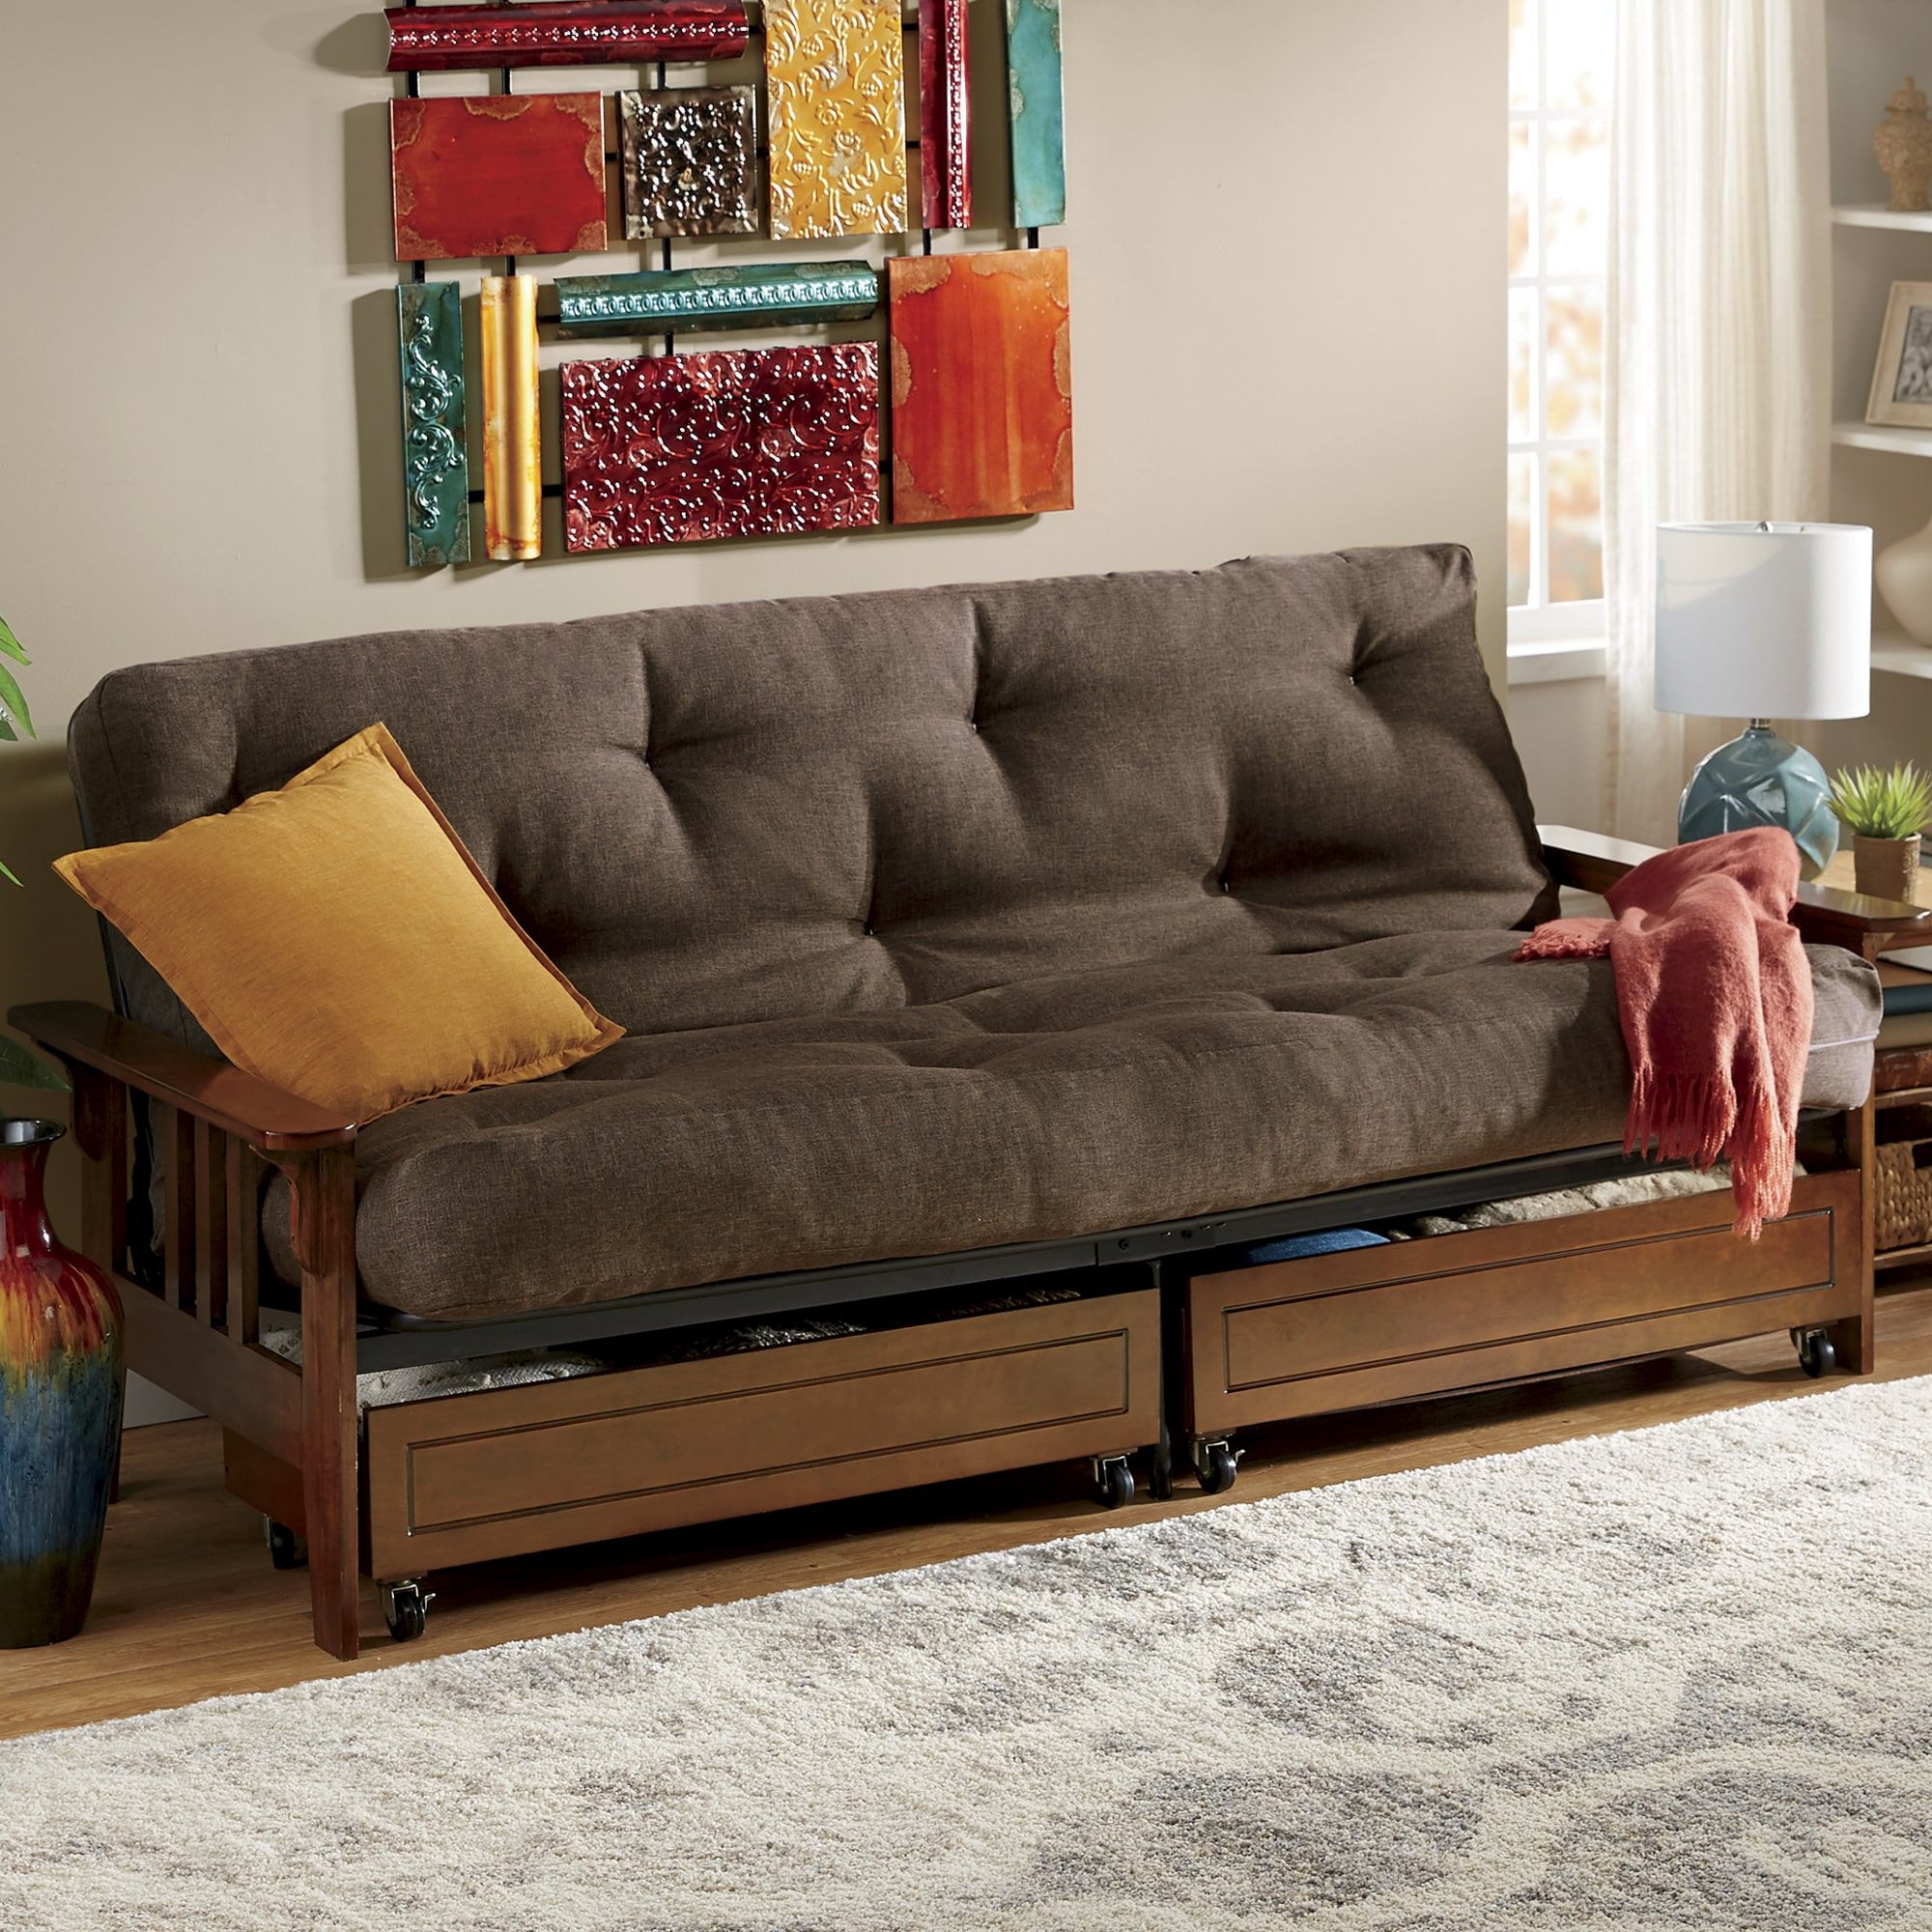 beds for living room french country pictures sofas futons sofa futon seventh avenue mission storage and mattress